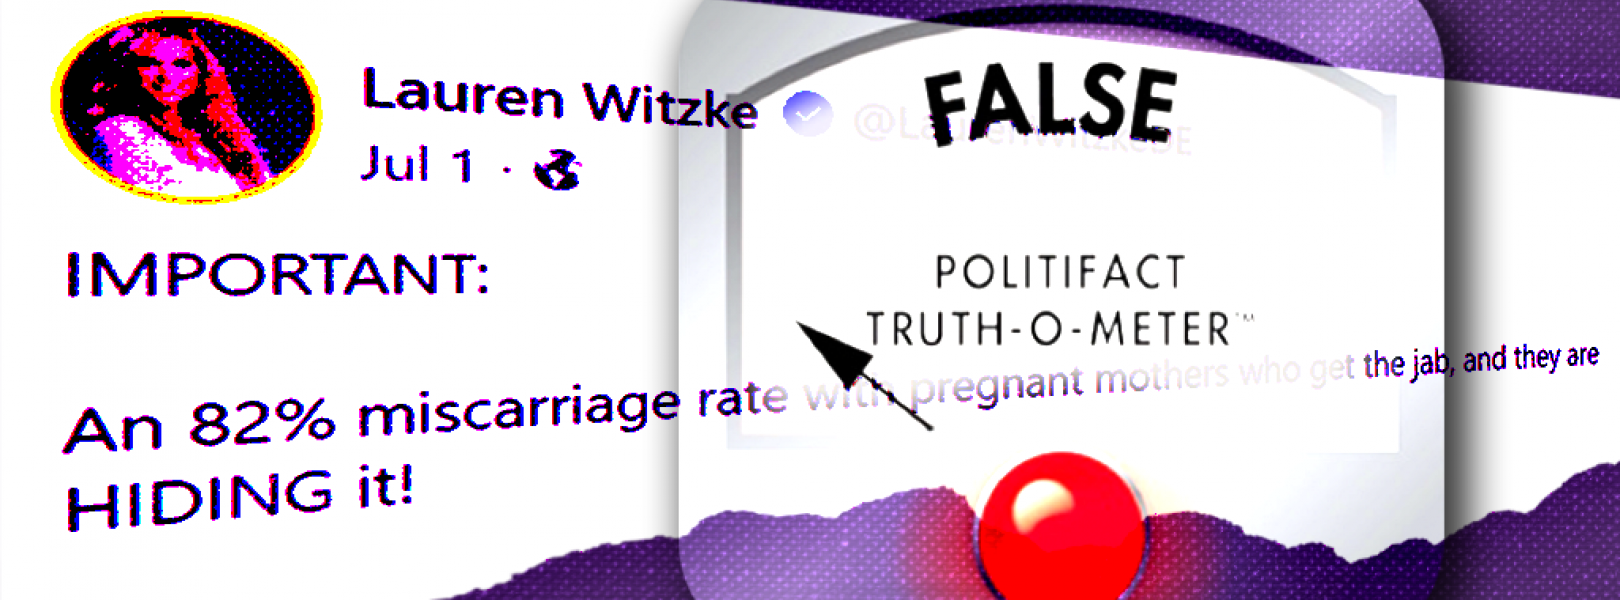 GOP Senate candidate Lauren Witzke spreading misinformation about COVID vaccines and pregnancies